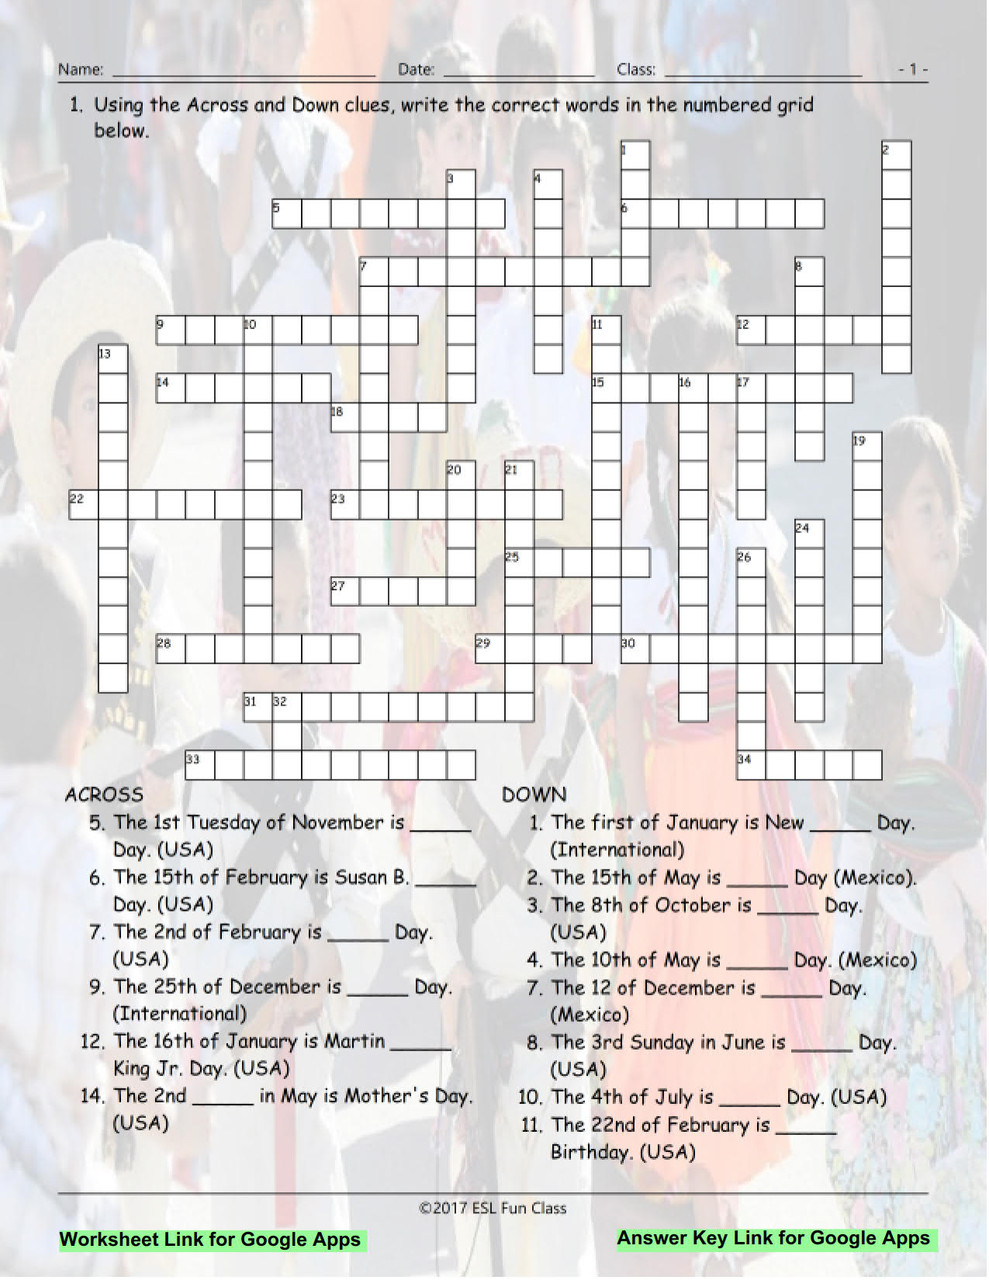 medium resolution of American vs Mexican Holidays Interactive Crossword Puzzle for Google Apps  LINKS - Amped Up Learning